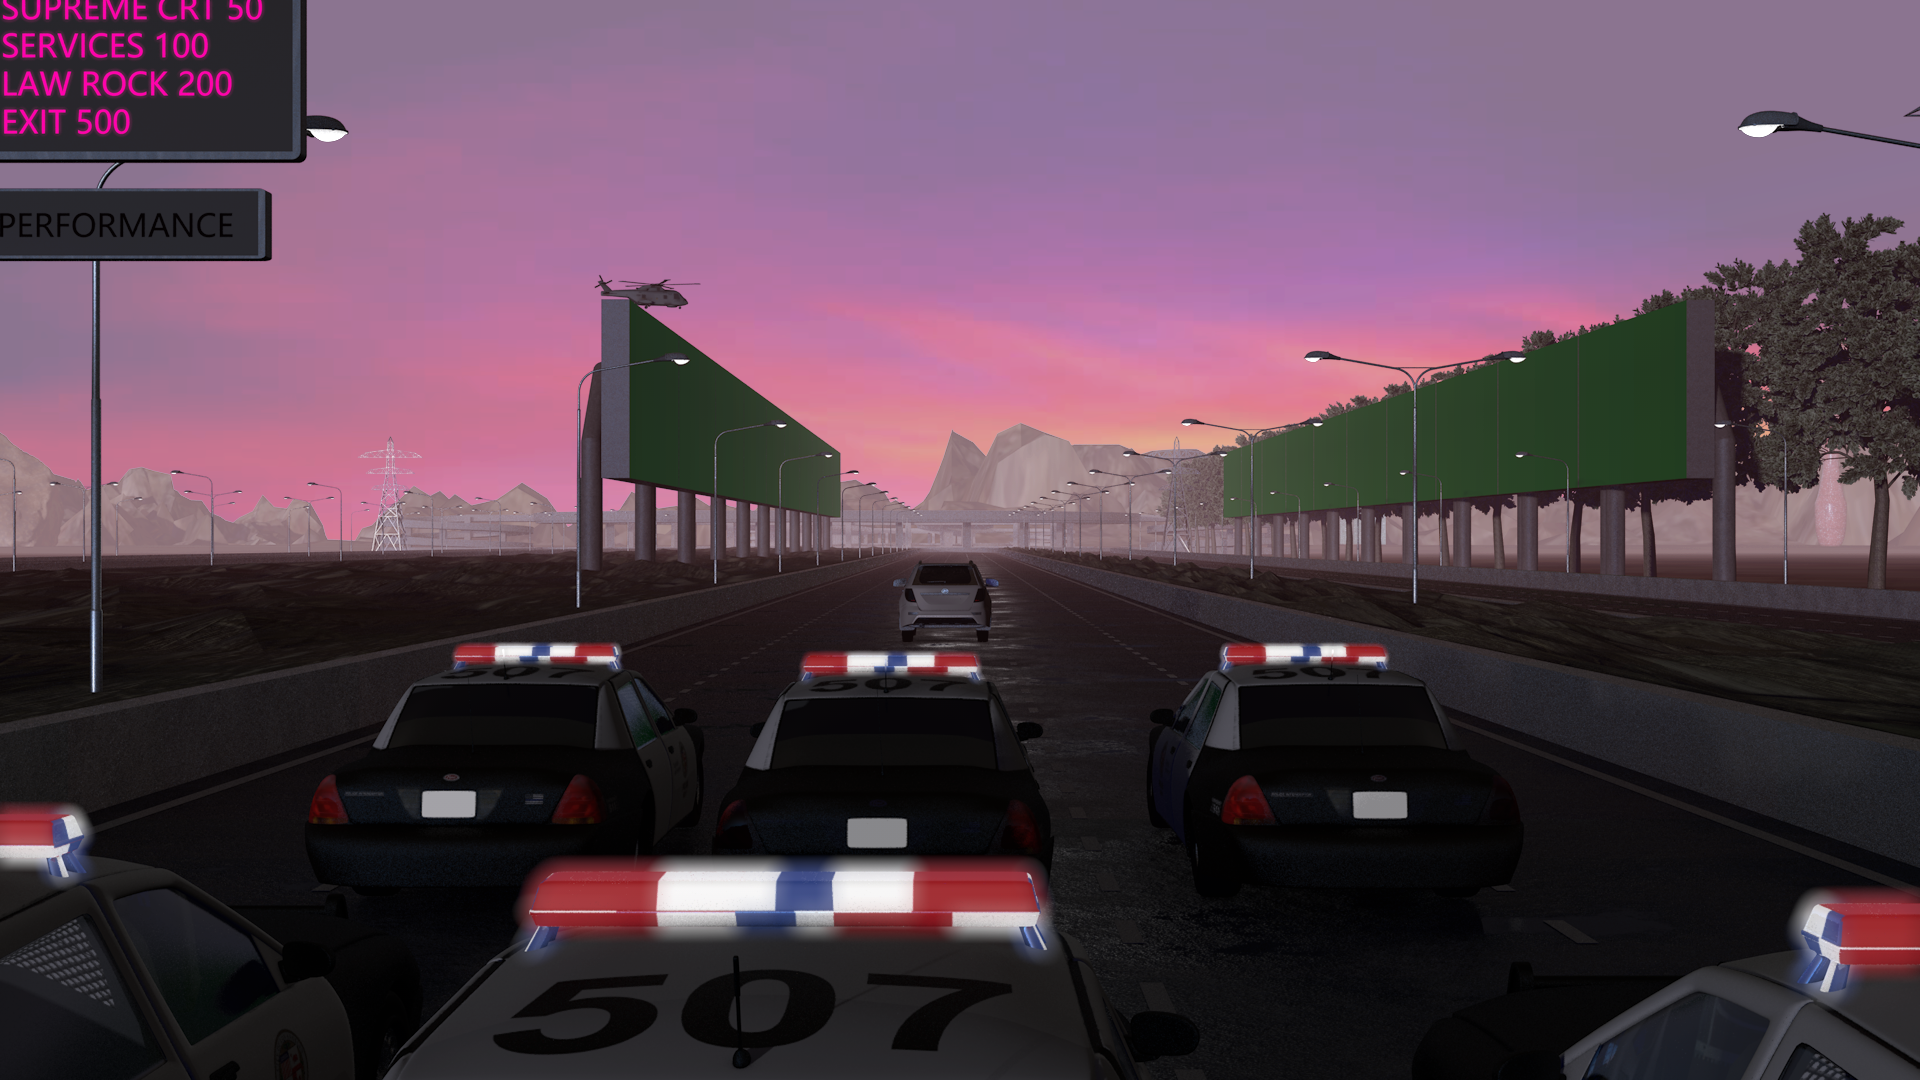 Performing the OJ car chase at sunset